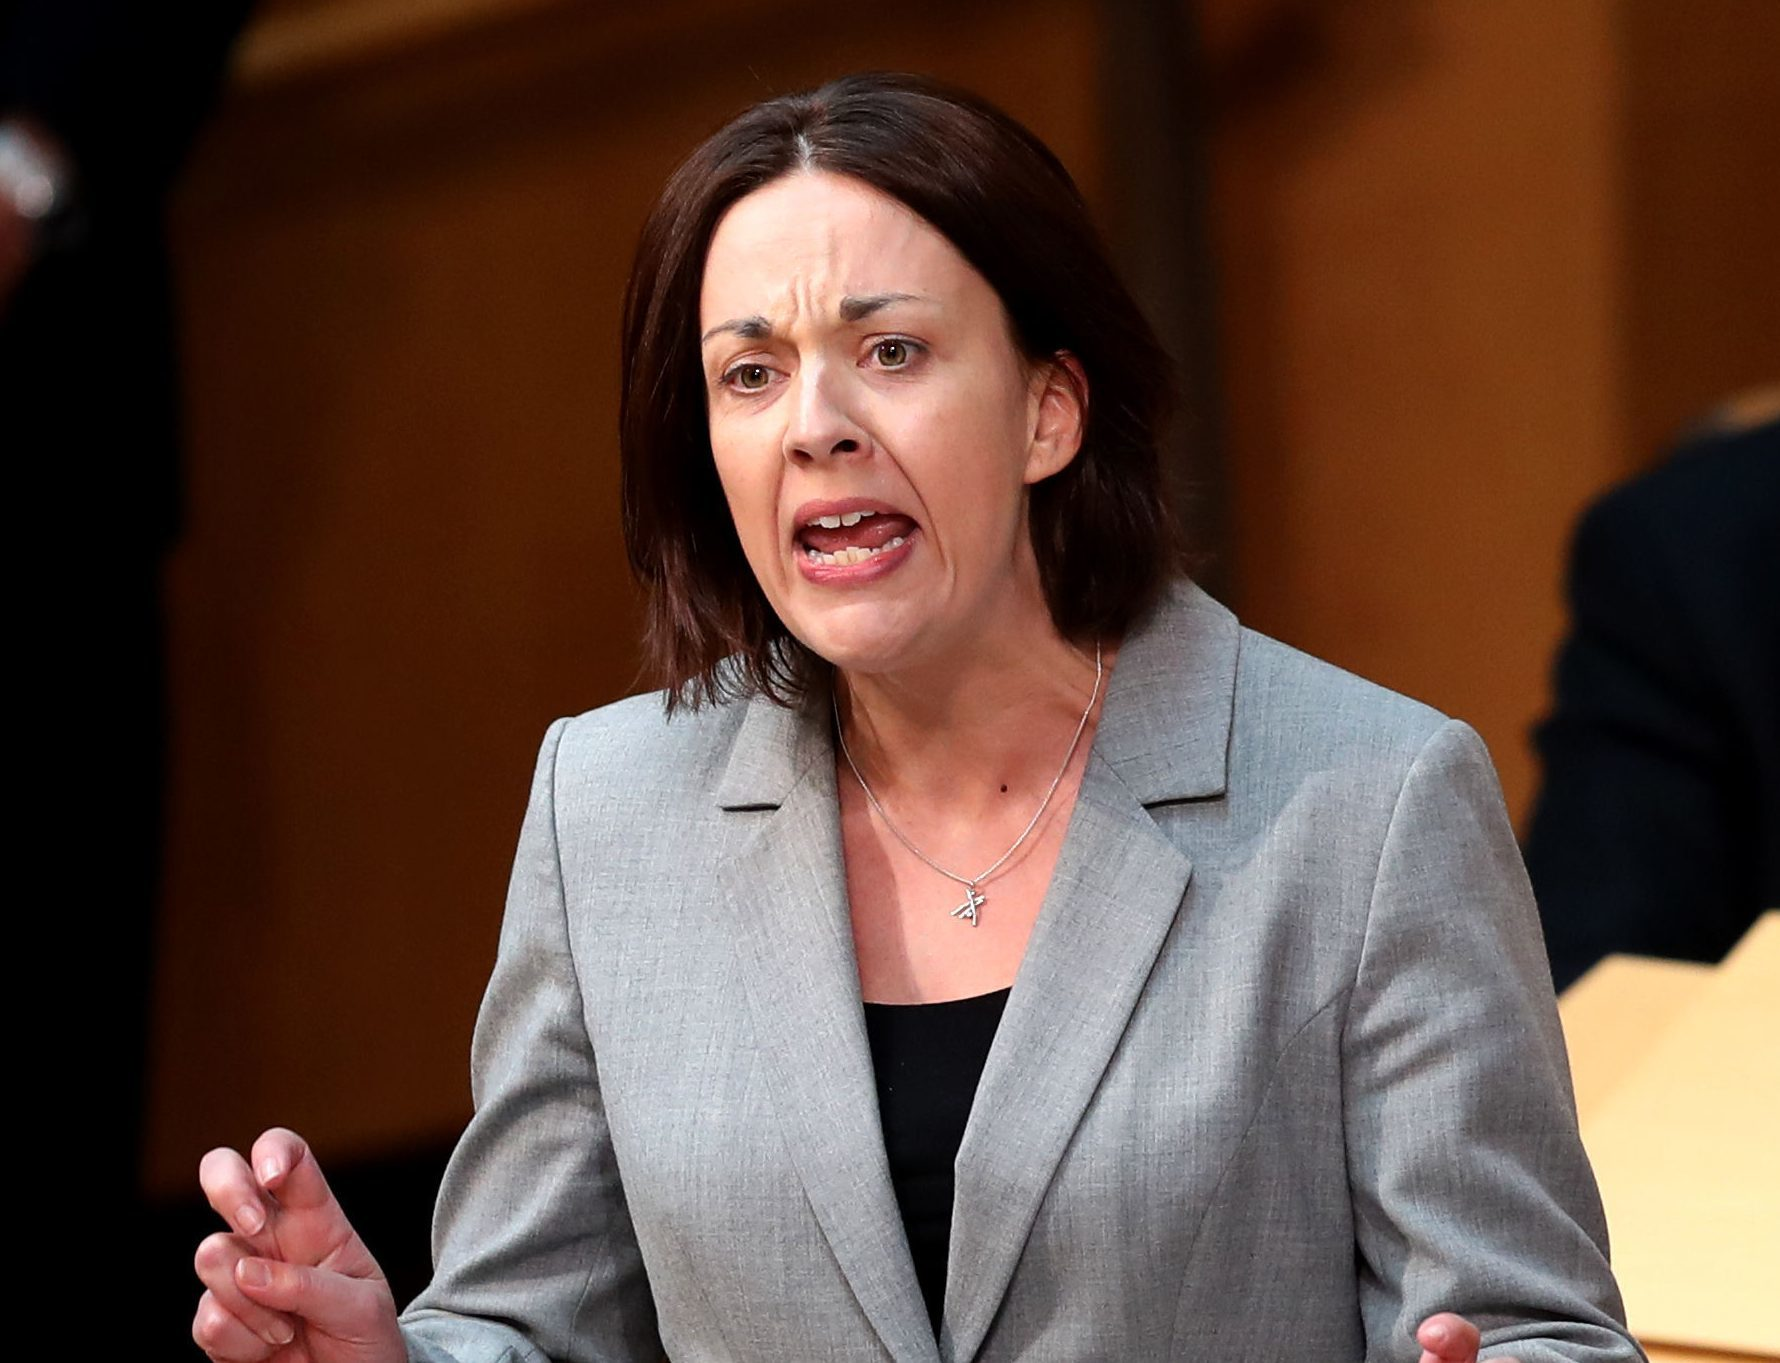 """Scottish Labour leader Kezia Dugdale, in the main chamber of the Scottish Parliament, Edinburgh, during the debate against the UK Government's so-called """"rape clause"""" for tax credits. (Jane Barlow/PA Wire)"""